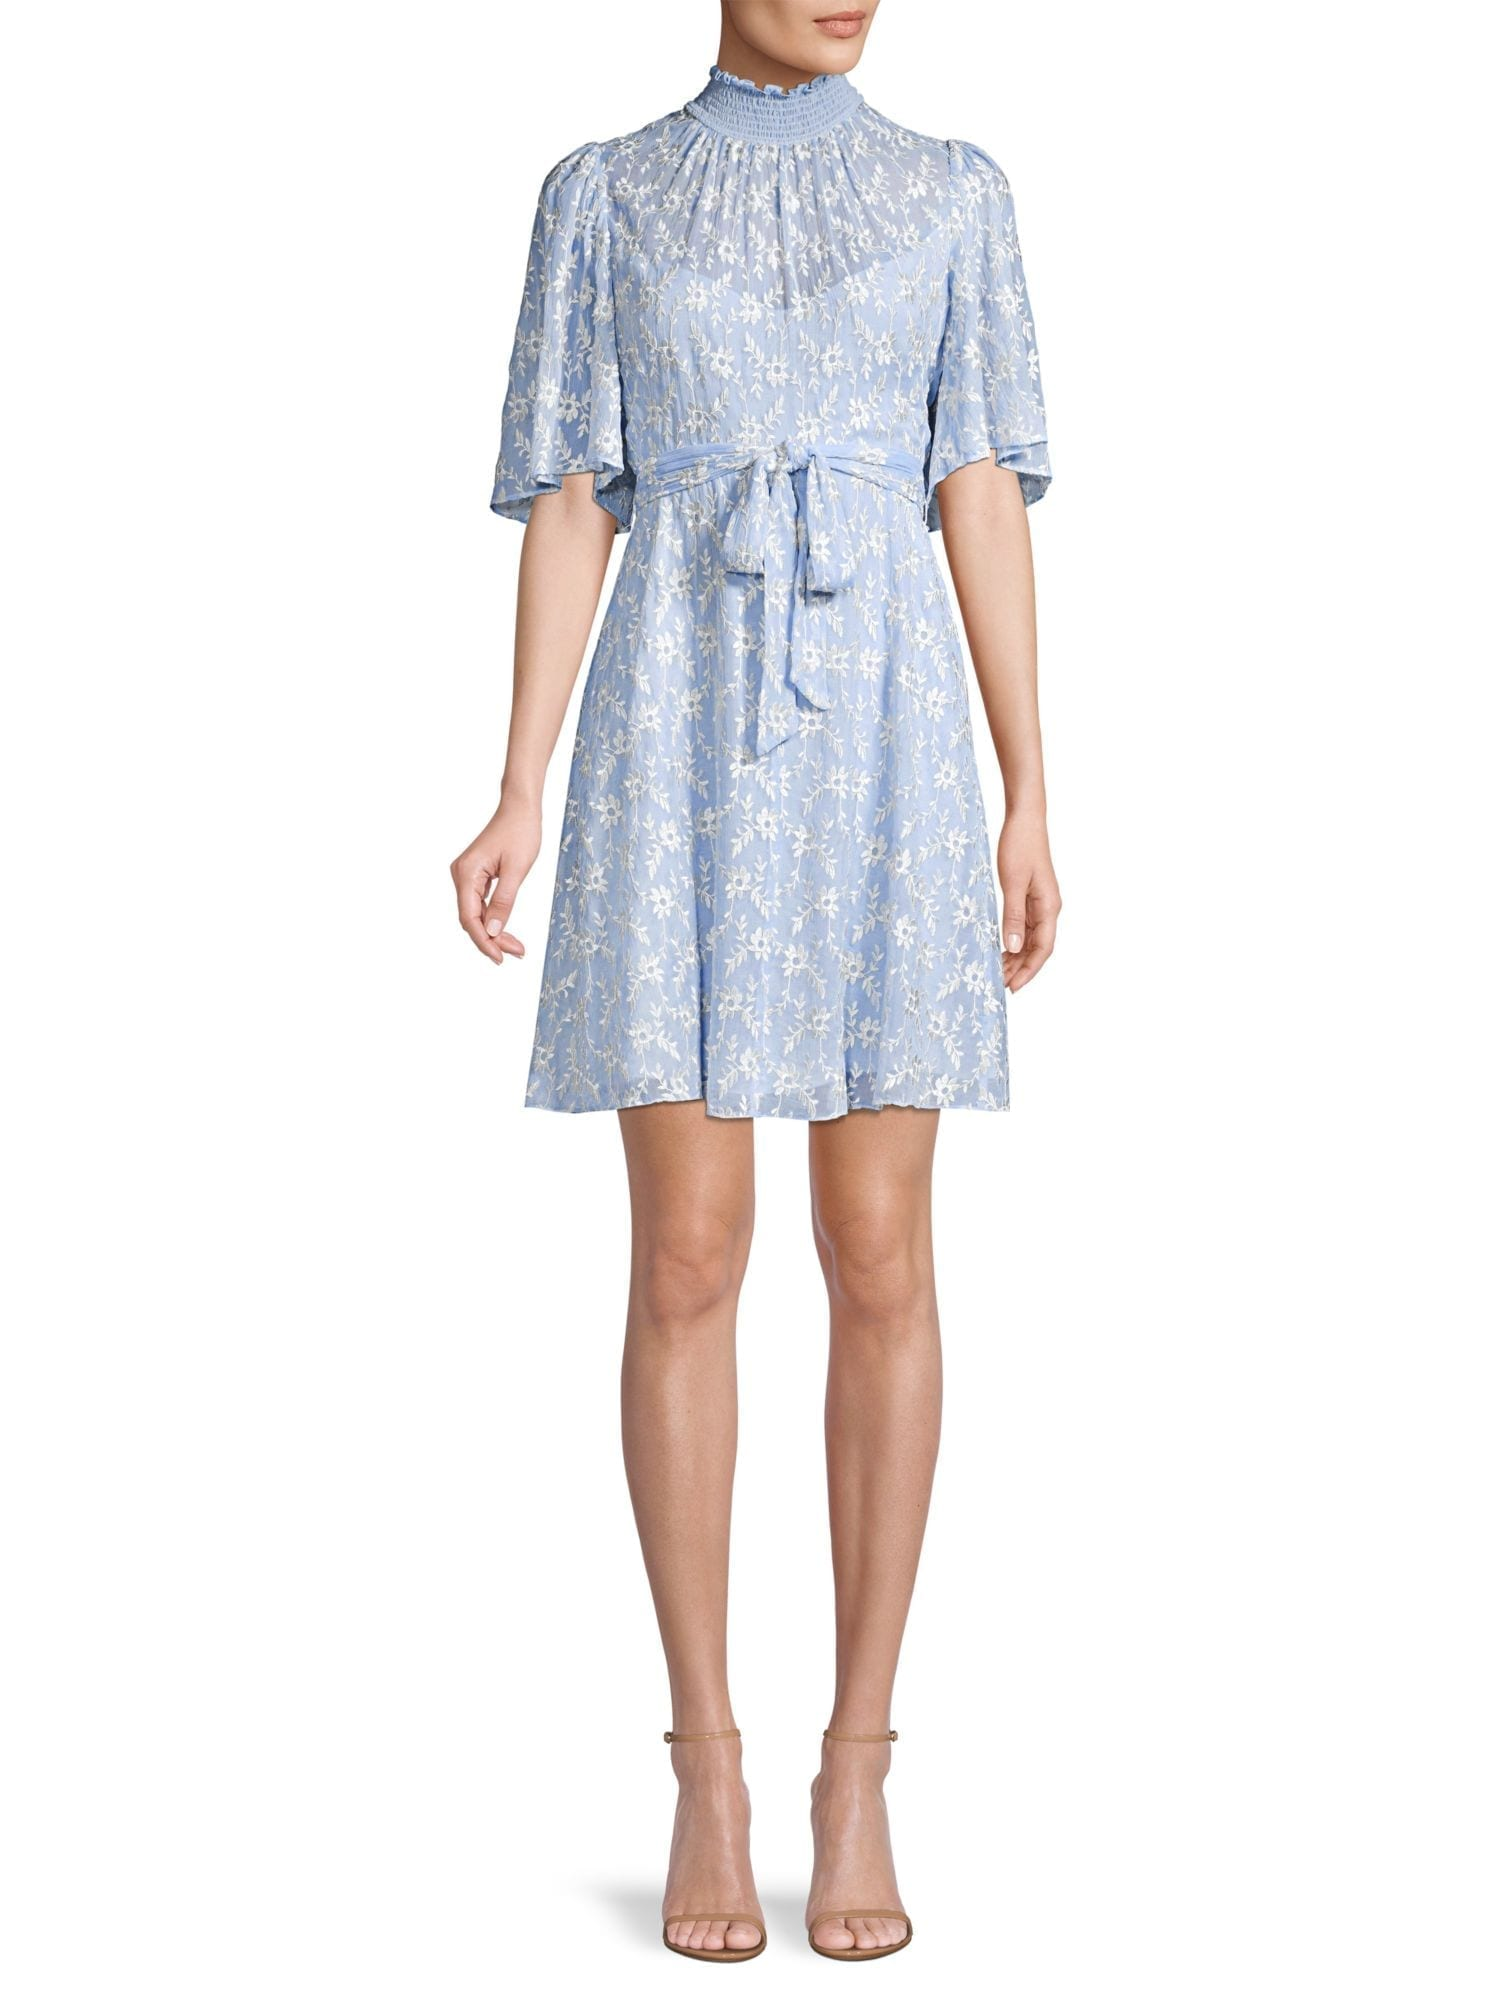 REBECCA TAYLOR Vine Embroidered Dress